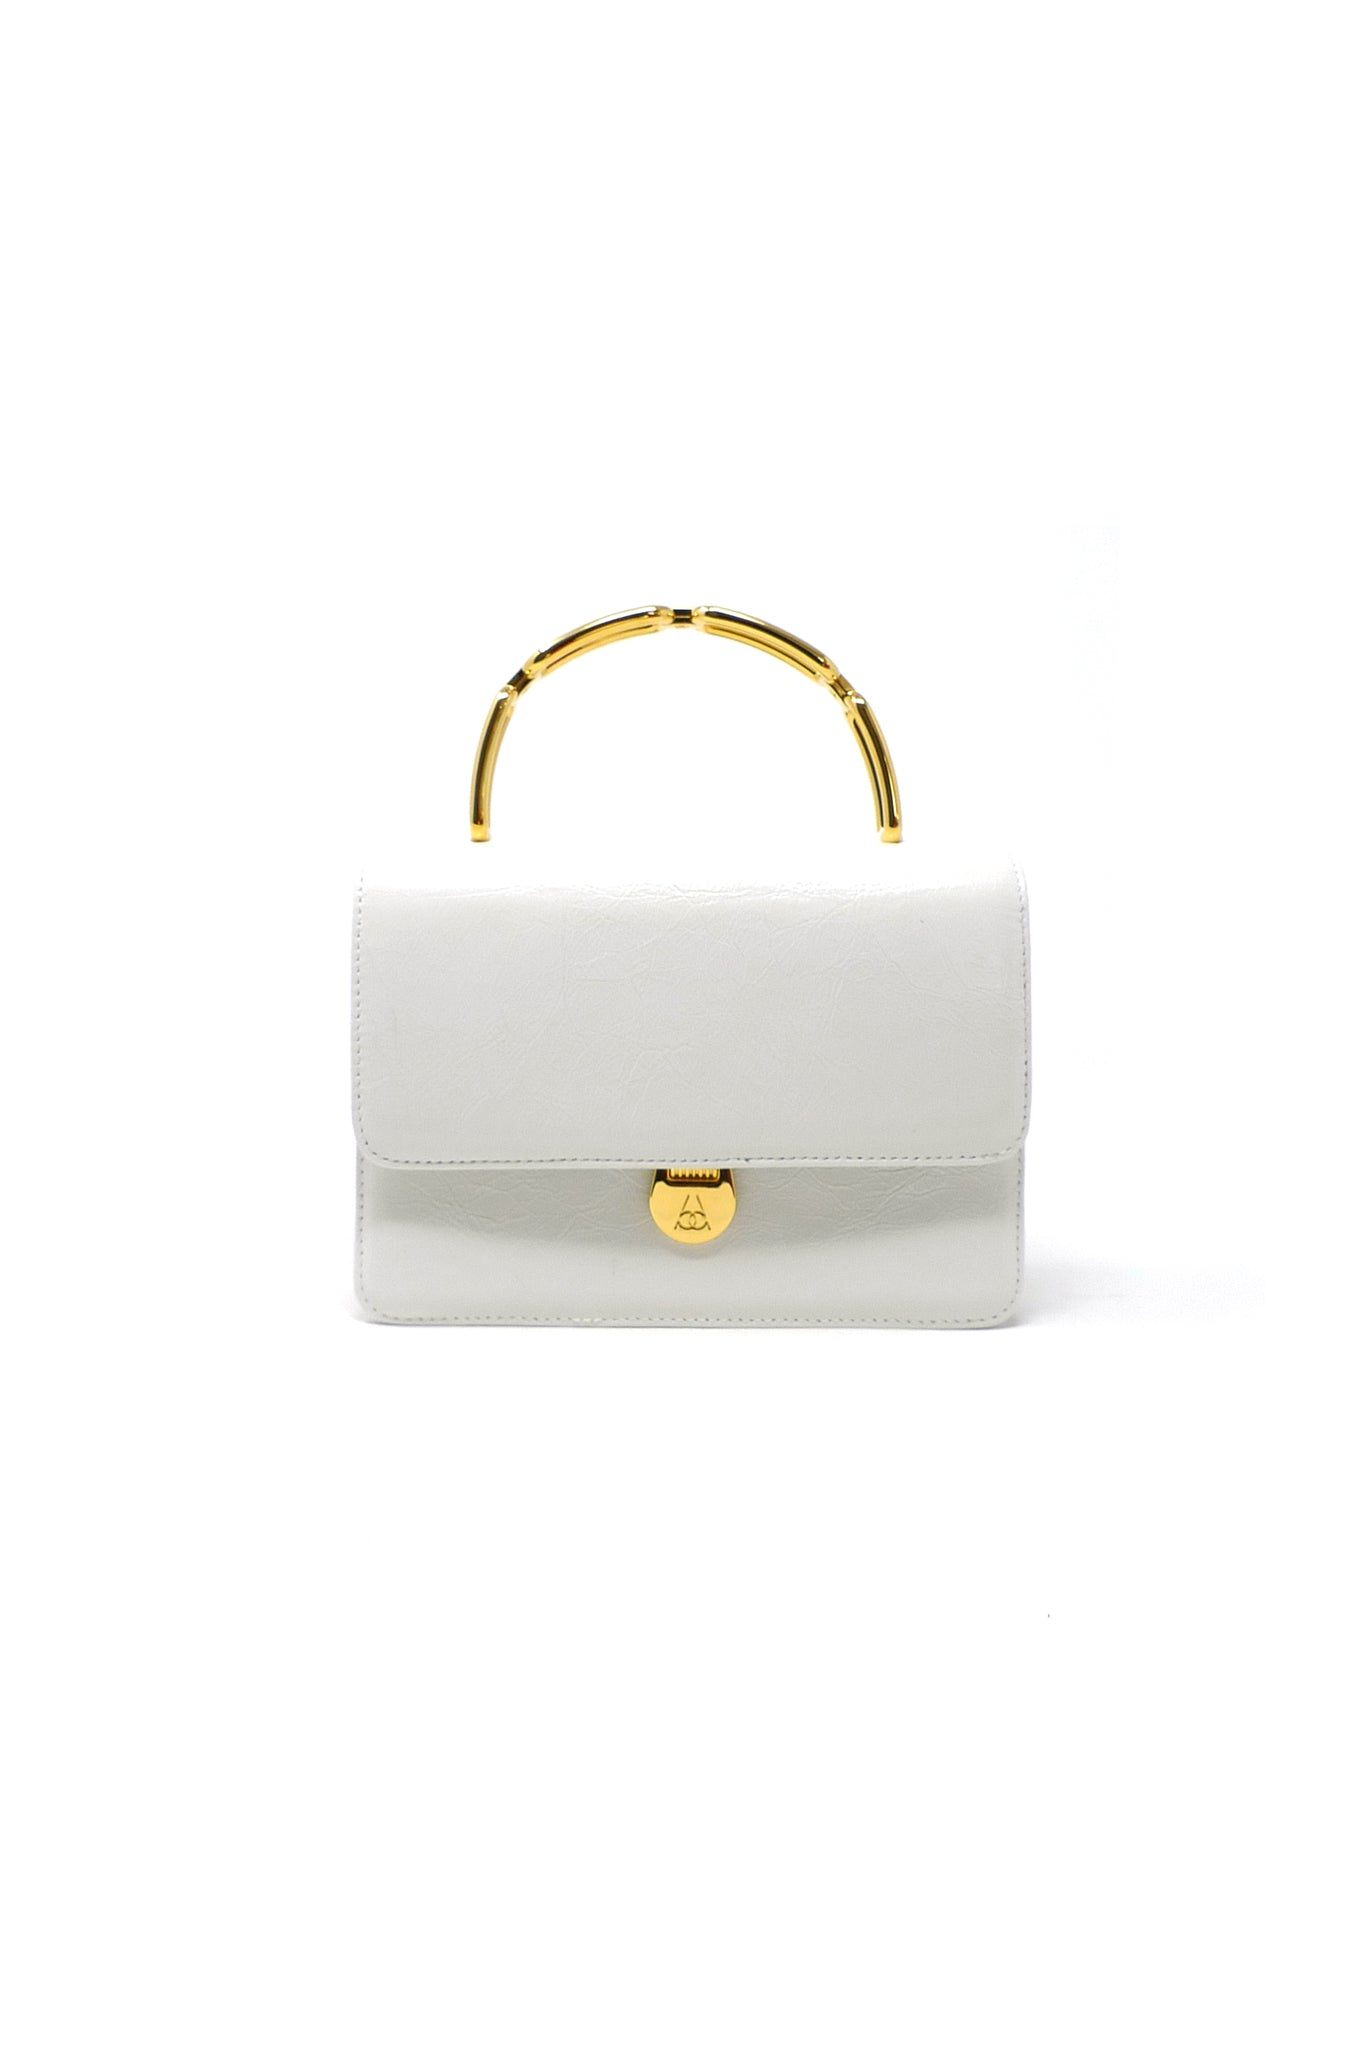 Lynx Top Handle Bag in White Leather